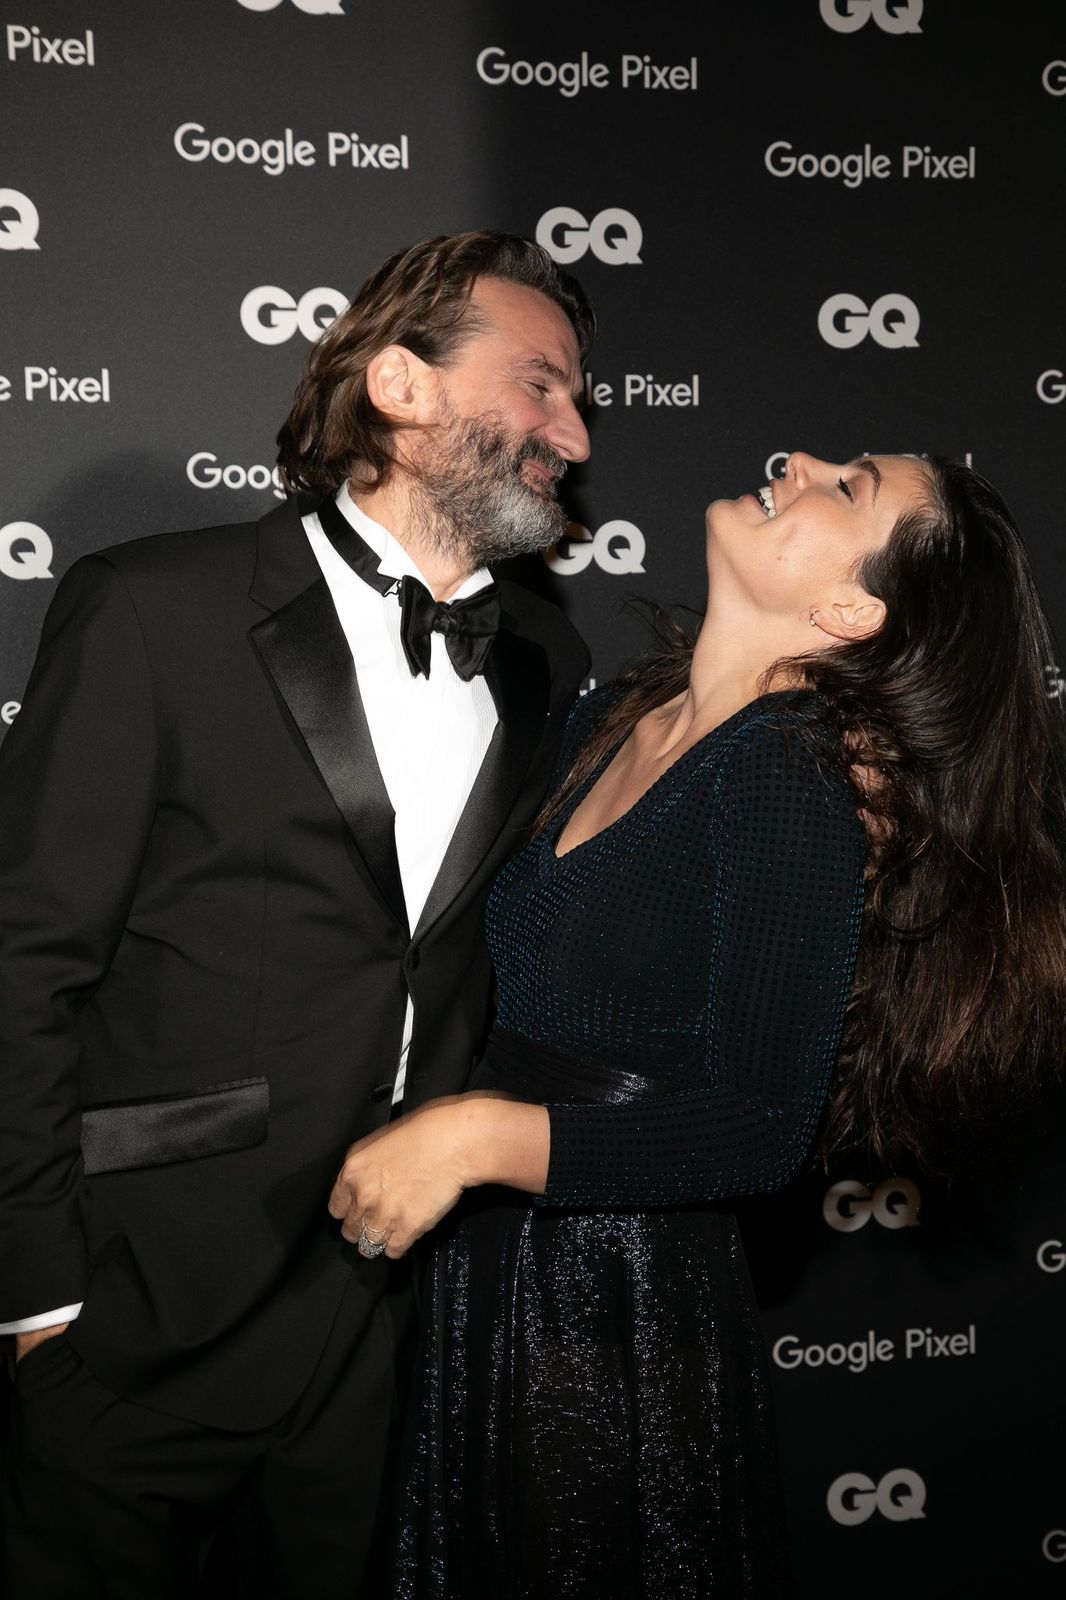 L'animateur Frédéric Beigbeder et son épouse Lara Micheli assistent à la remise des prix GQ Men of the Year 2018 au Centre Pompidou le 26 novembre 2018 à Paris, France. | Photo : Getty Images